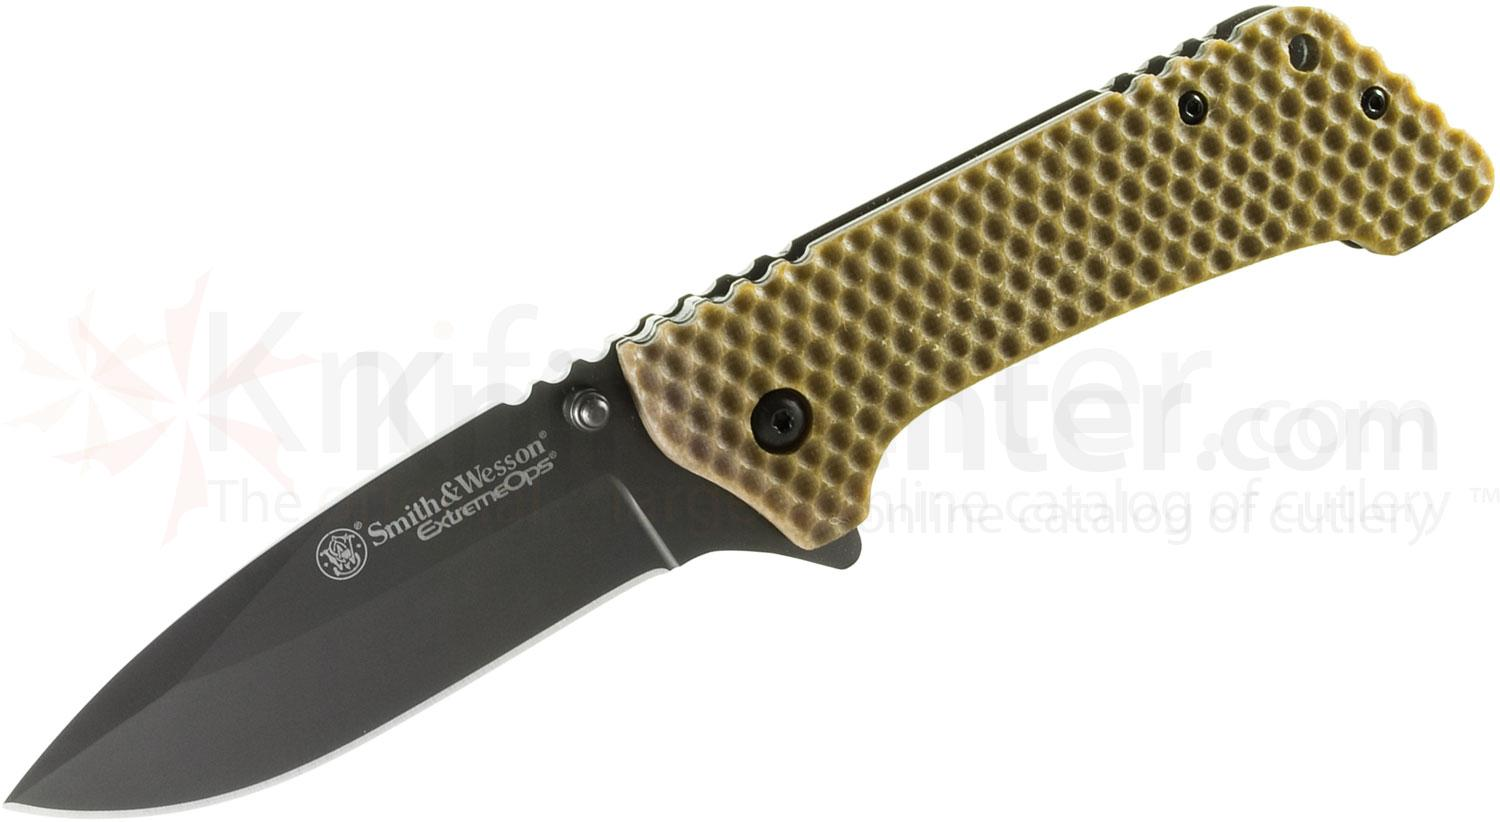 Smith & Wesson Extreme Ops Large Tactical Folding 3.9 inch Black Plain Blade, Brown G10 Handle